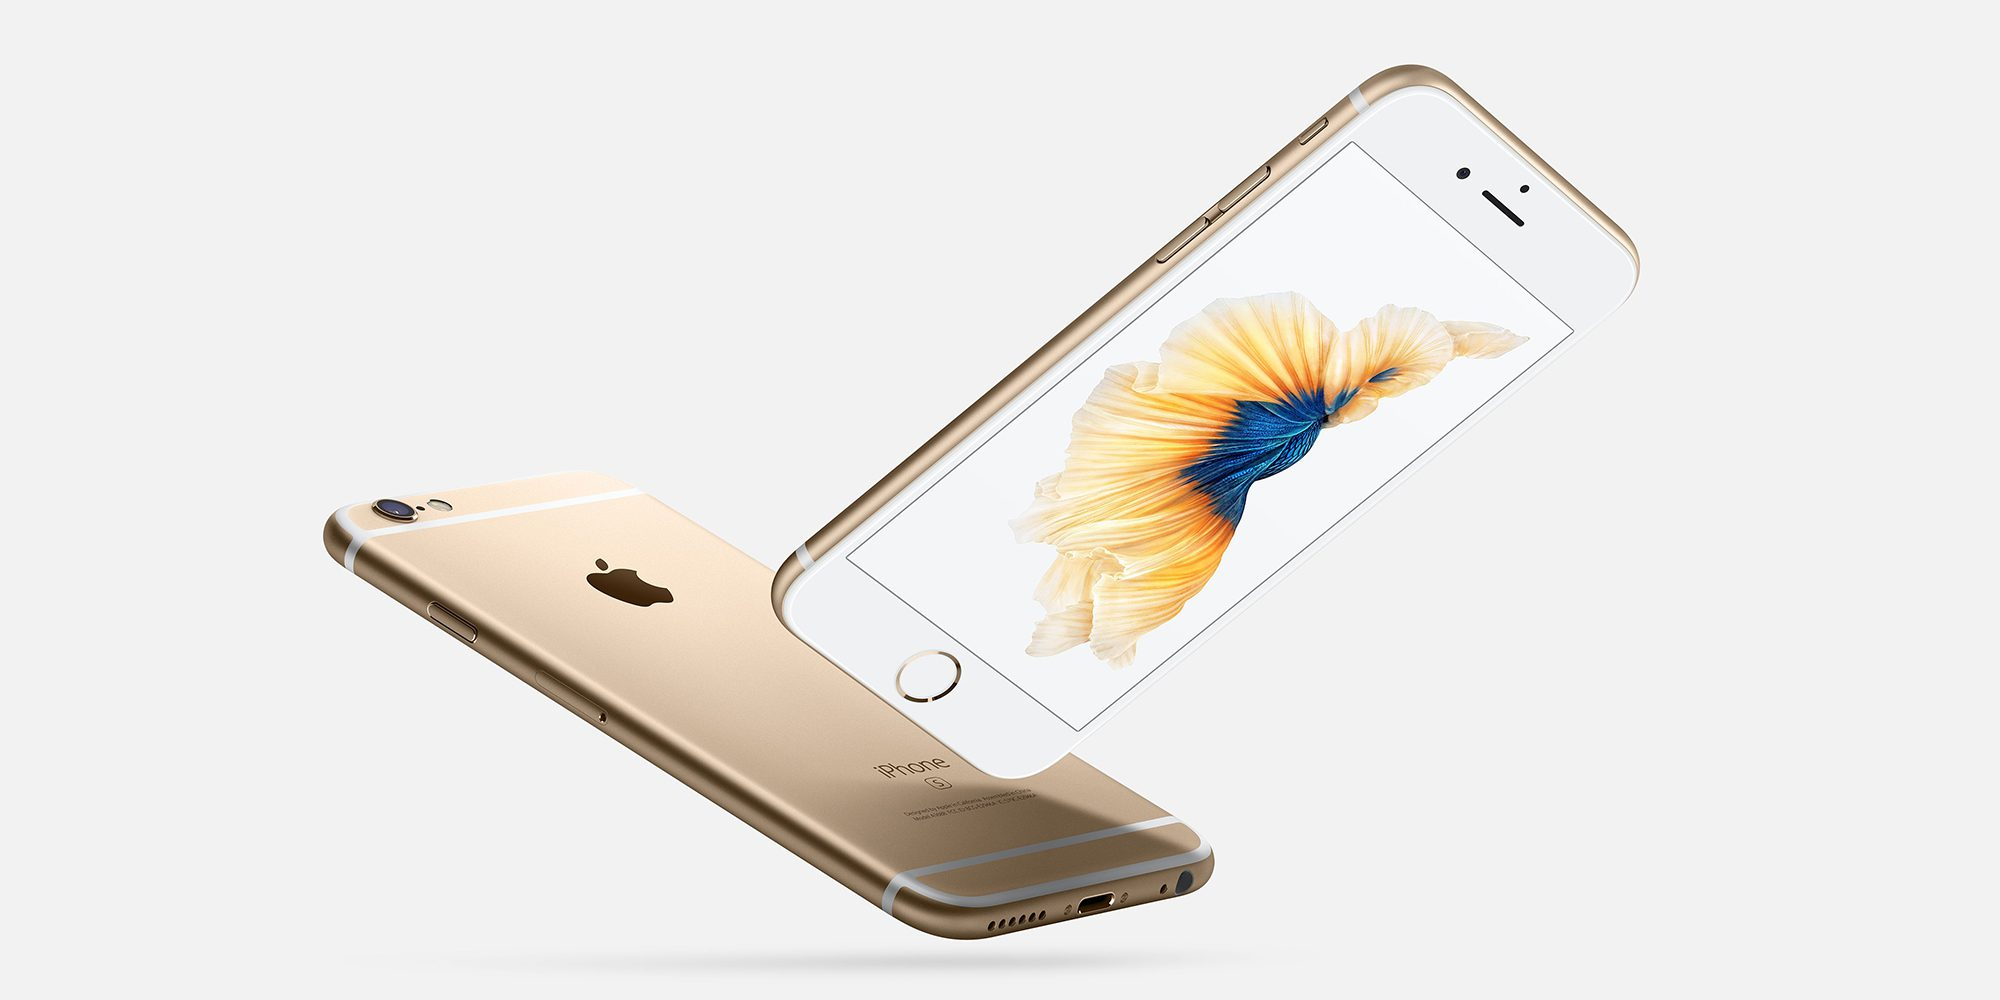 Rumor: Apple to drop support for iPhone 6s and original iPhone SE with iOS 15 next year – 9to5Mac